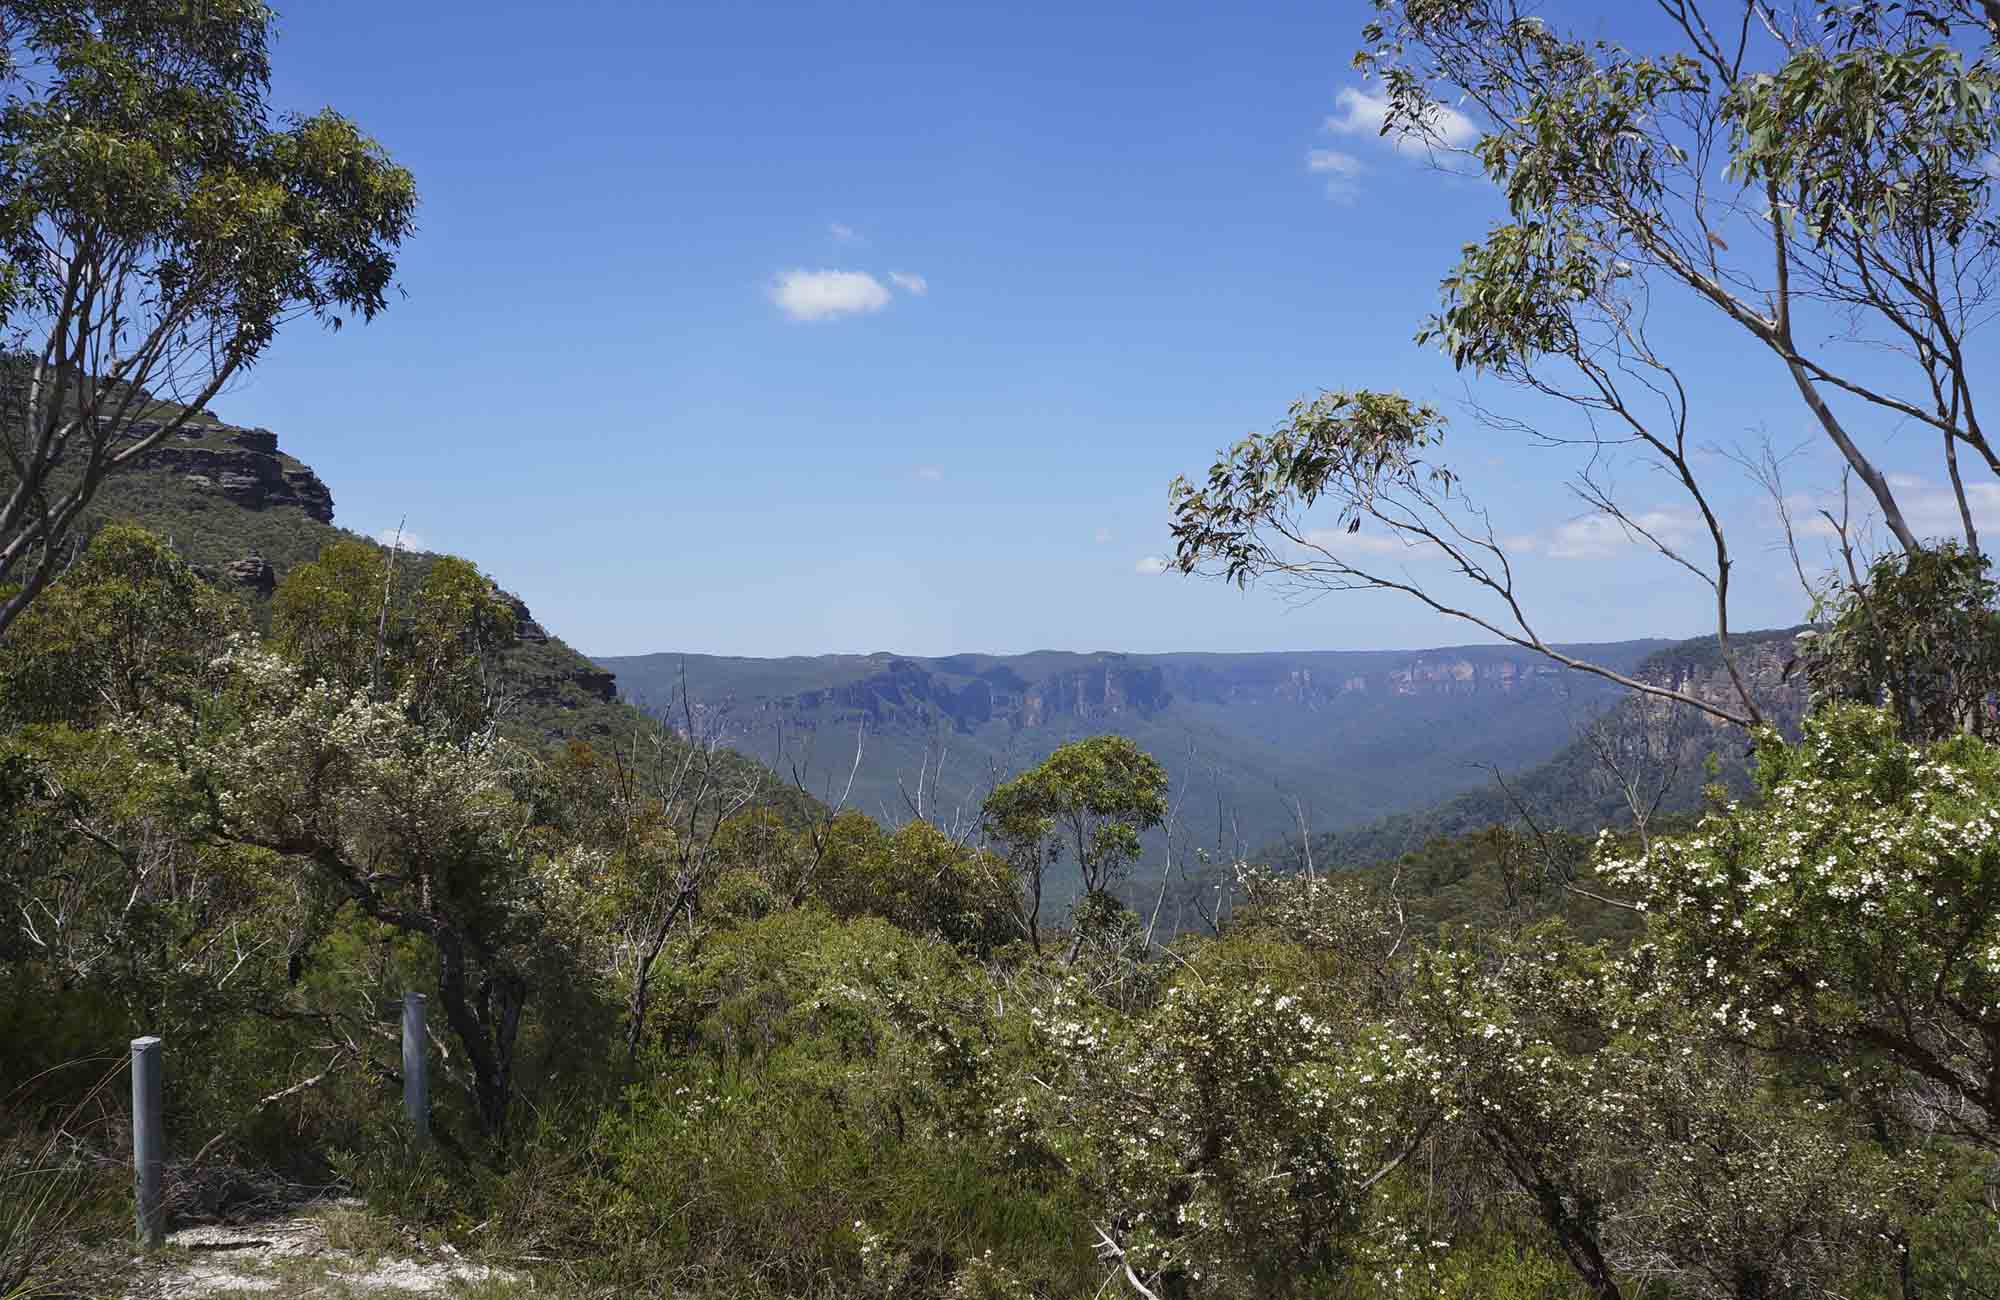 View of Grose Valley from Mount Banks carpark, Blue Mountains National Park. Photo: Steve Alton/OEH